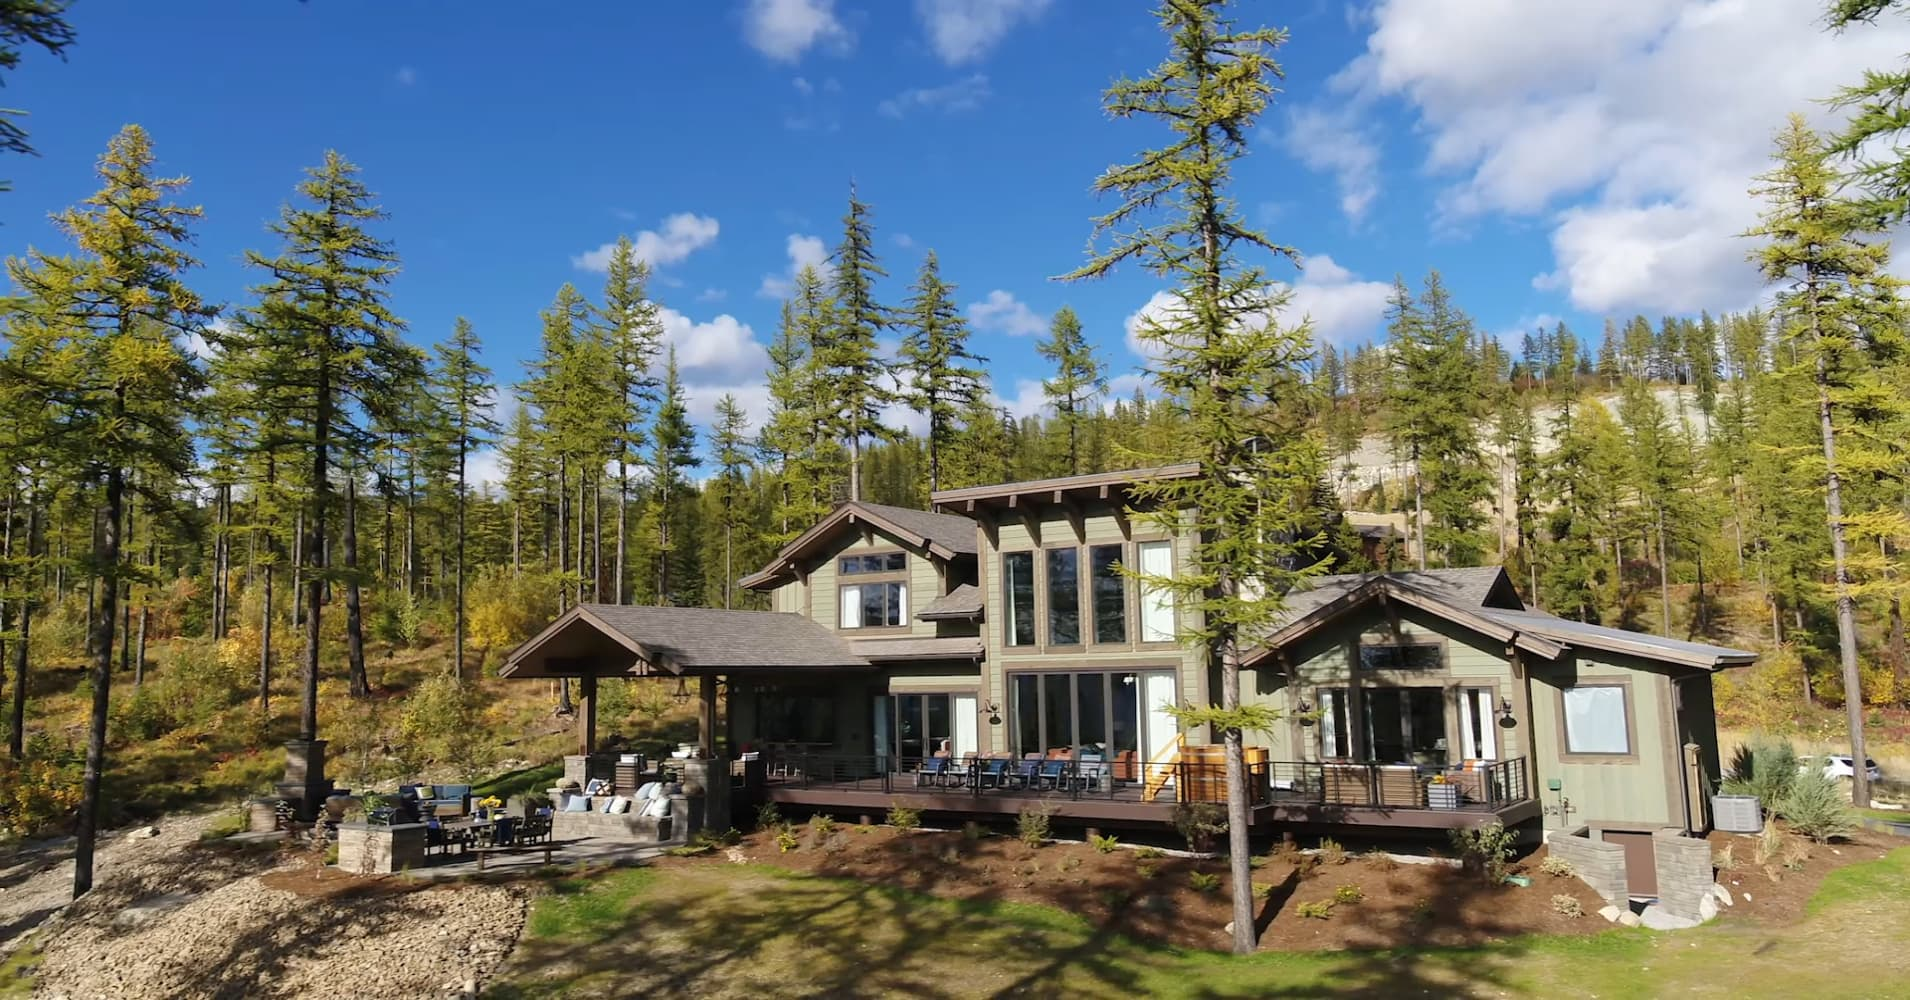 This Is The 2 Million Hgtv Dream Home Take A Look Inside